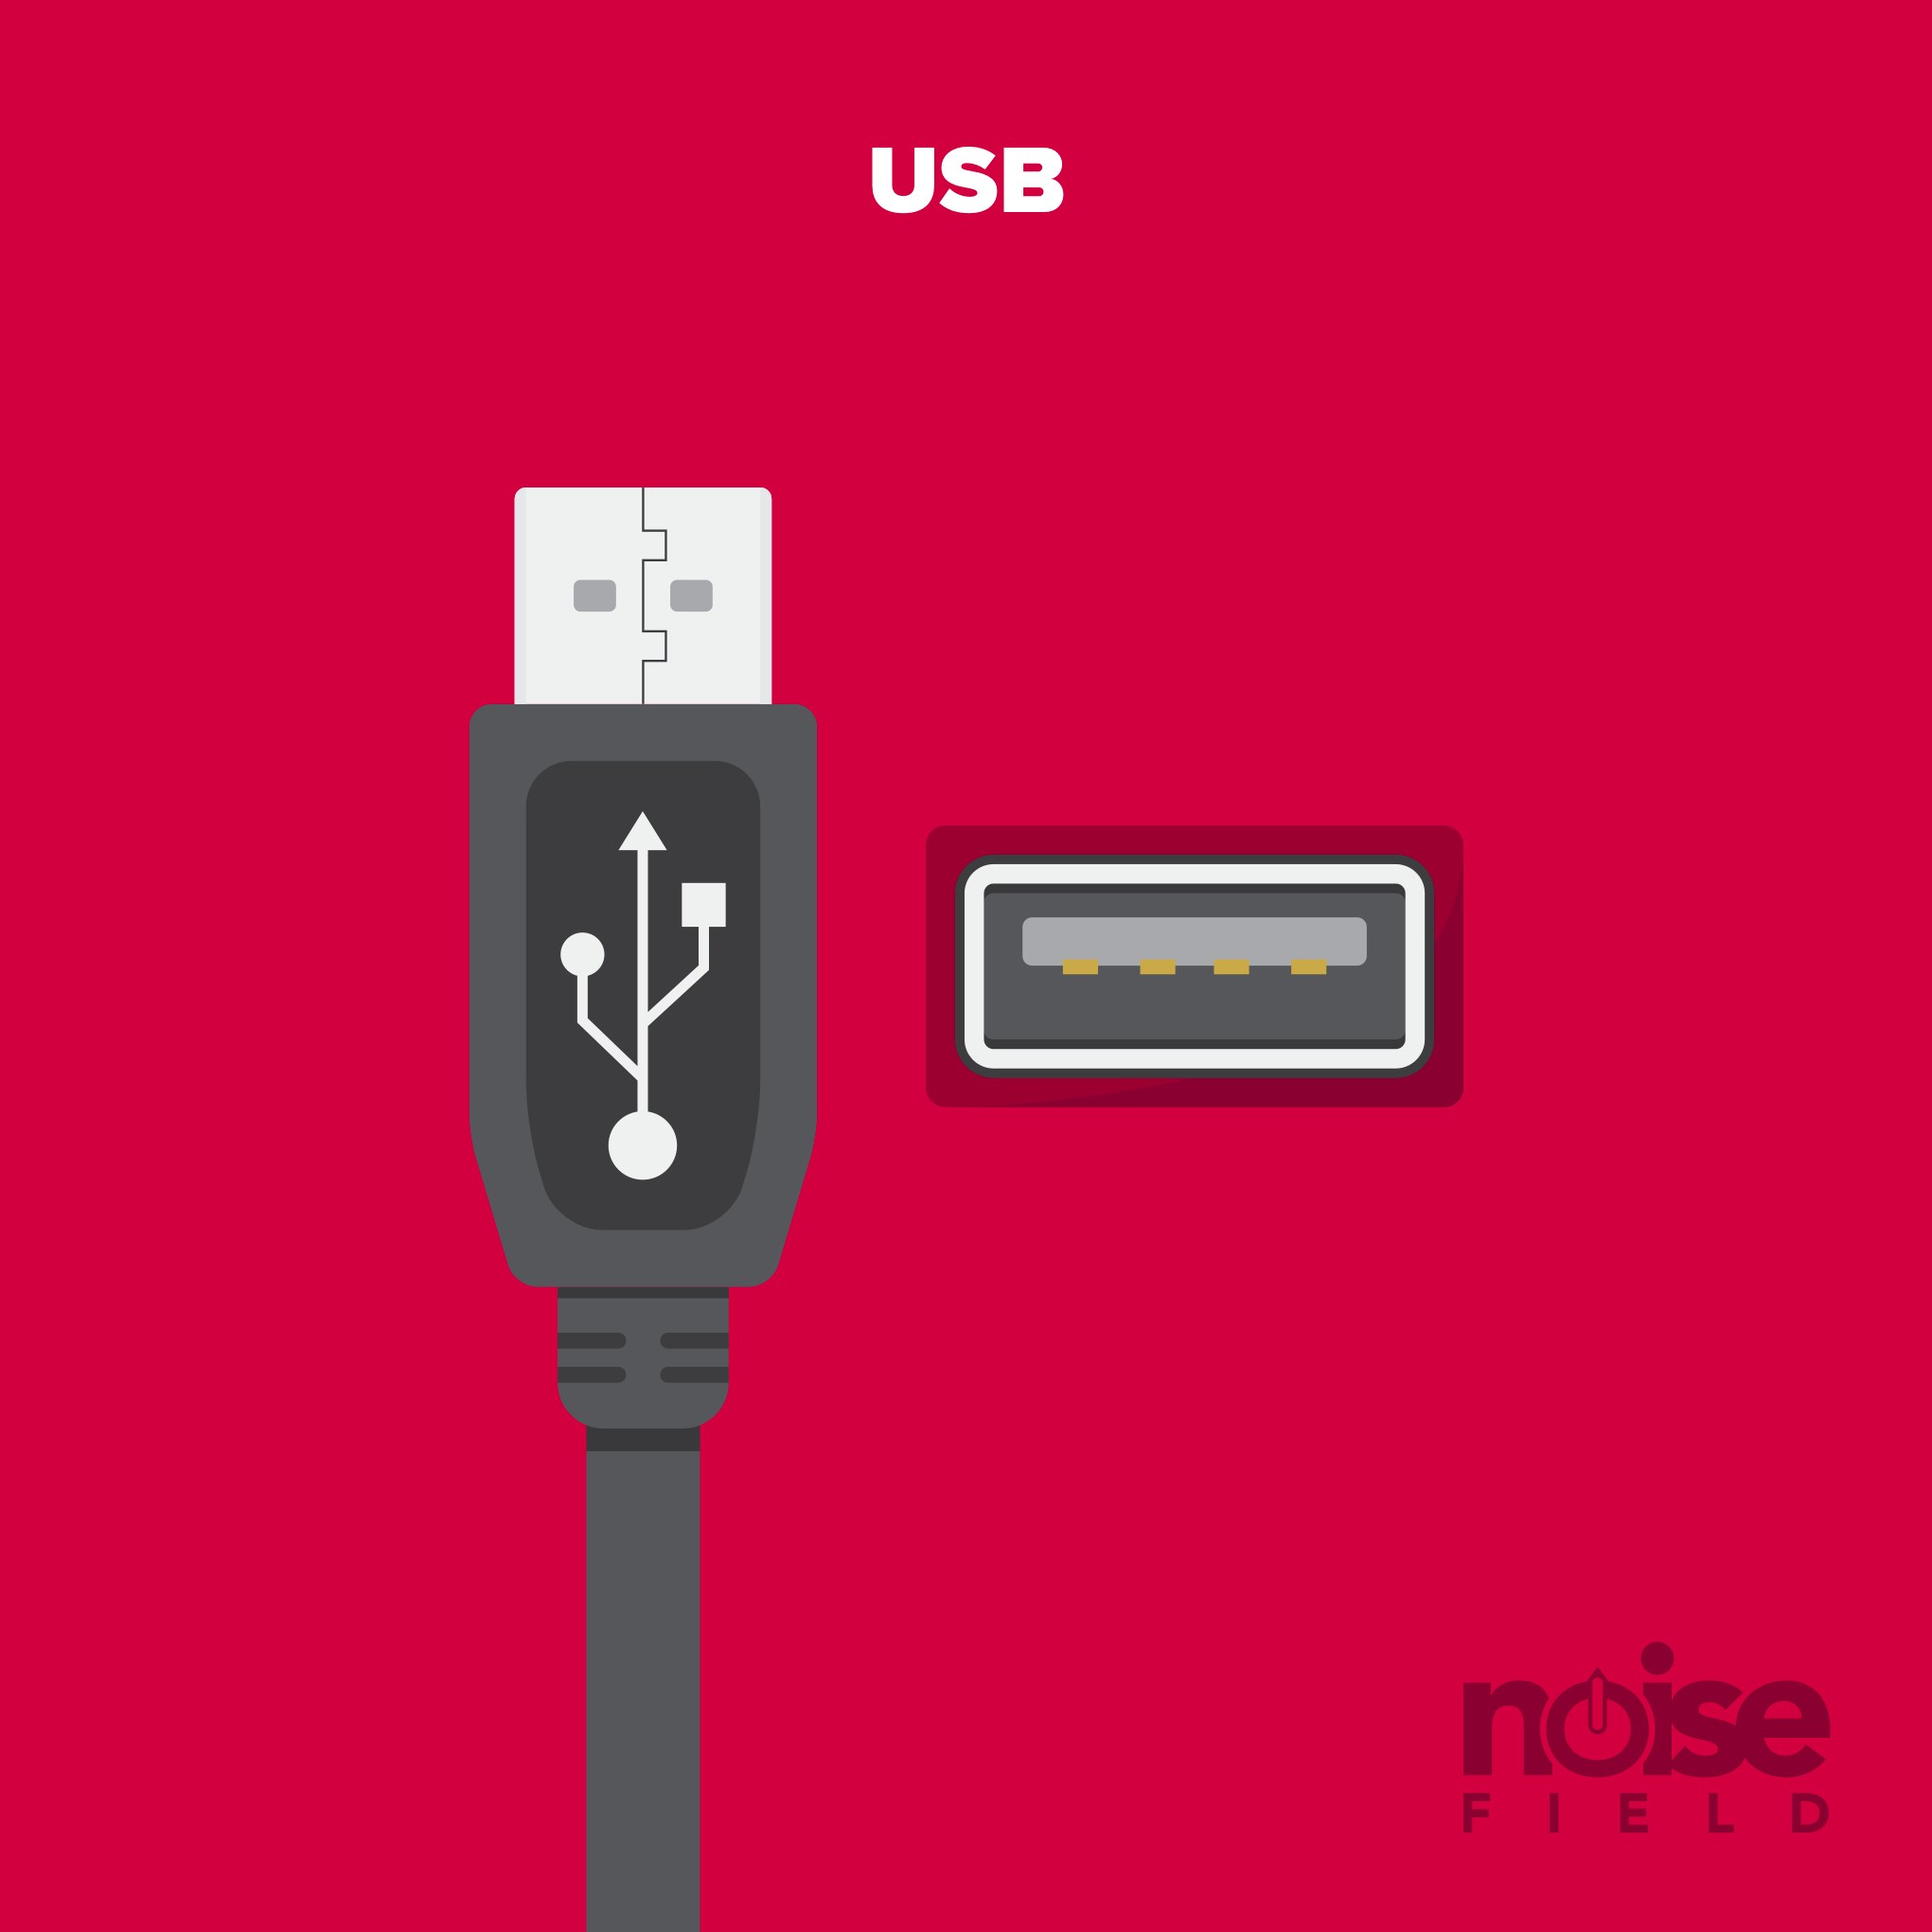 USB 2.0 Illustration Vector Audio Interface